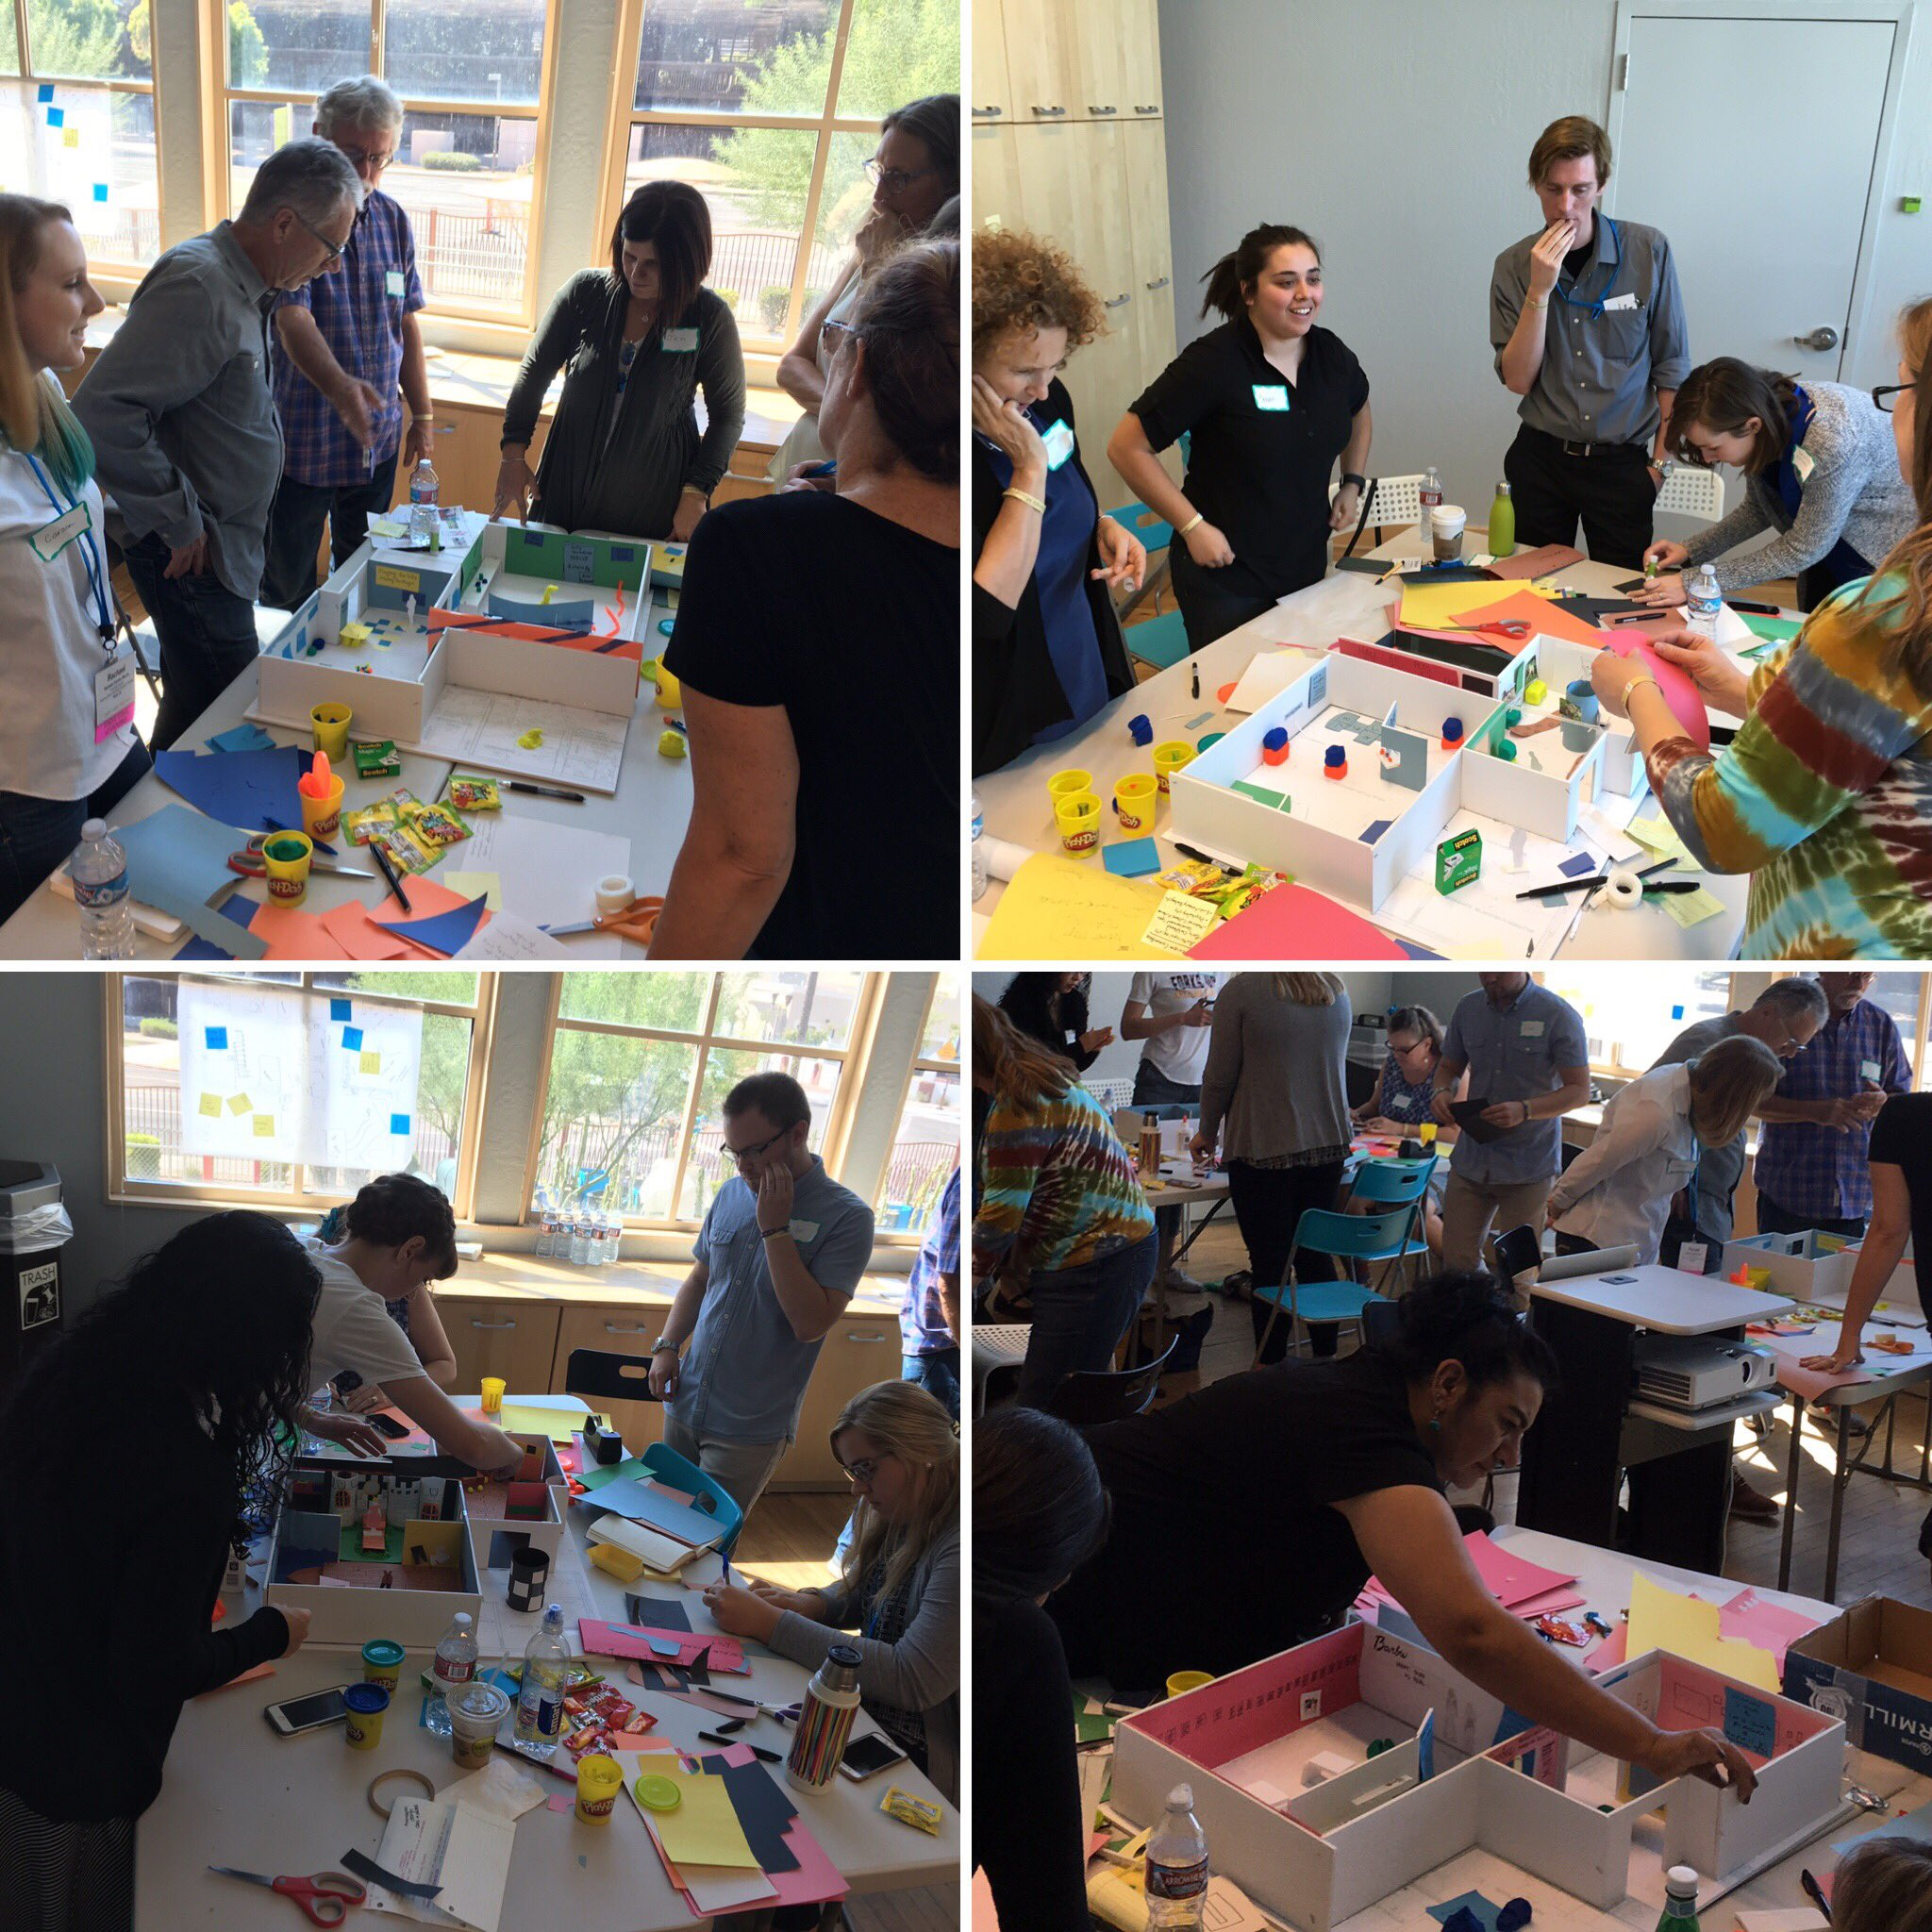 Each group is hard at work, bringing our exhibit ideas to life! #wma2016 #DesignDay @westmuse https://t.co/Kh9doLIf5o